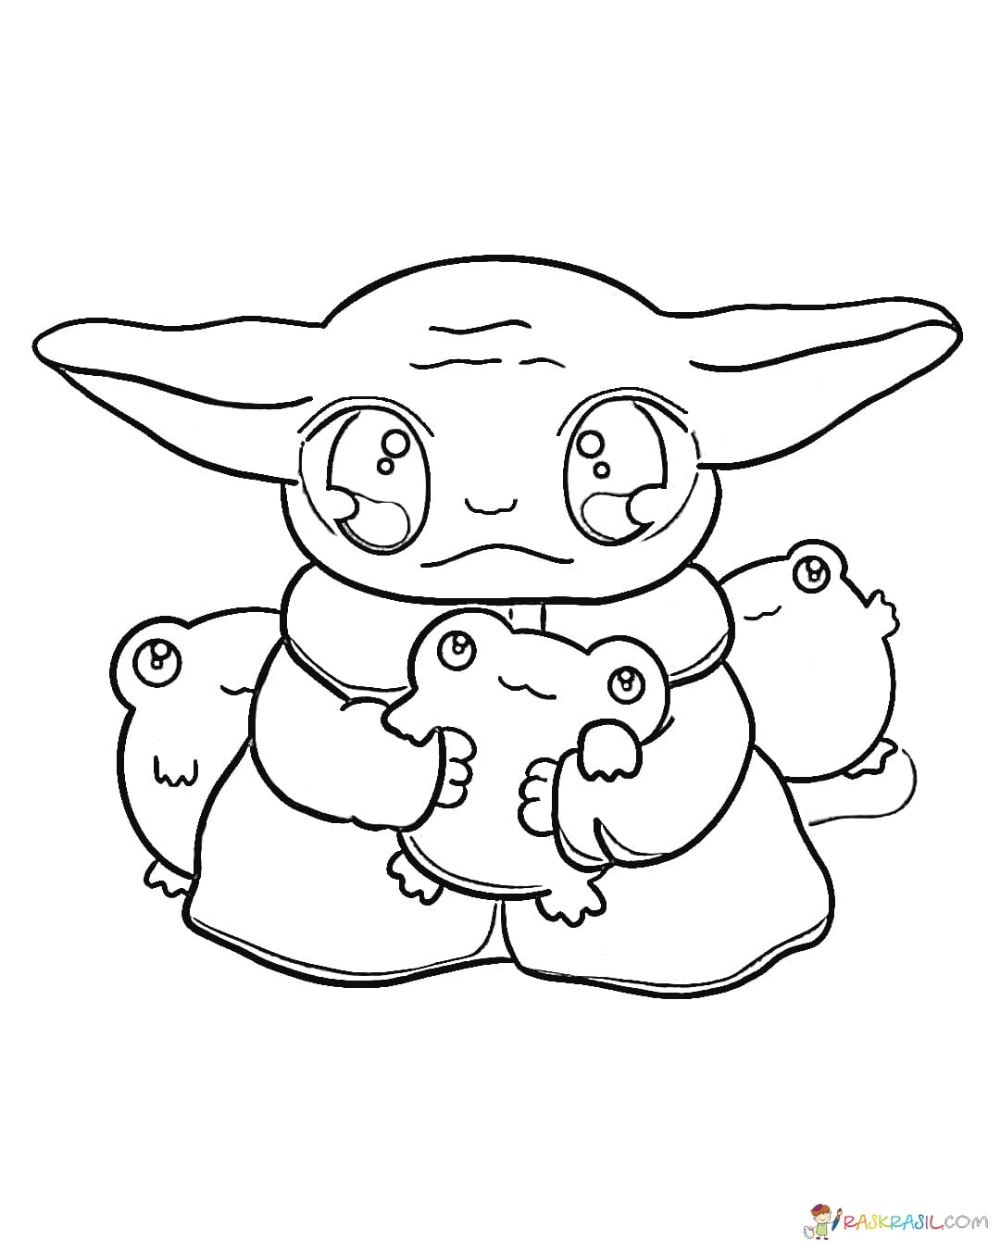 Coloring Pages Baby Yoda The Mandalorian And Baby Yoda Free Coloring Pages Star Wars Art Unique Coloring Pages